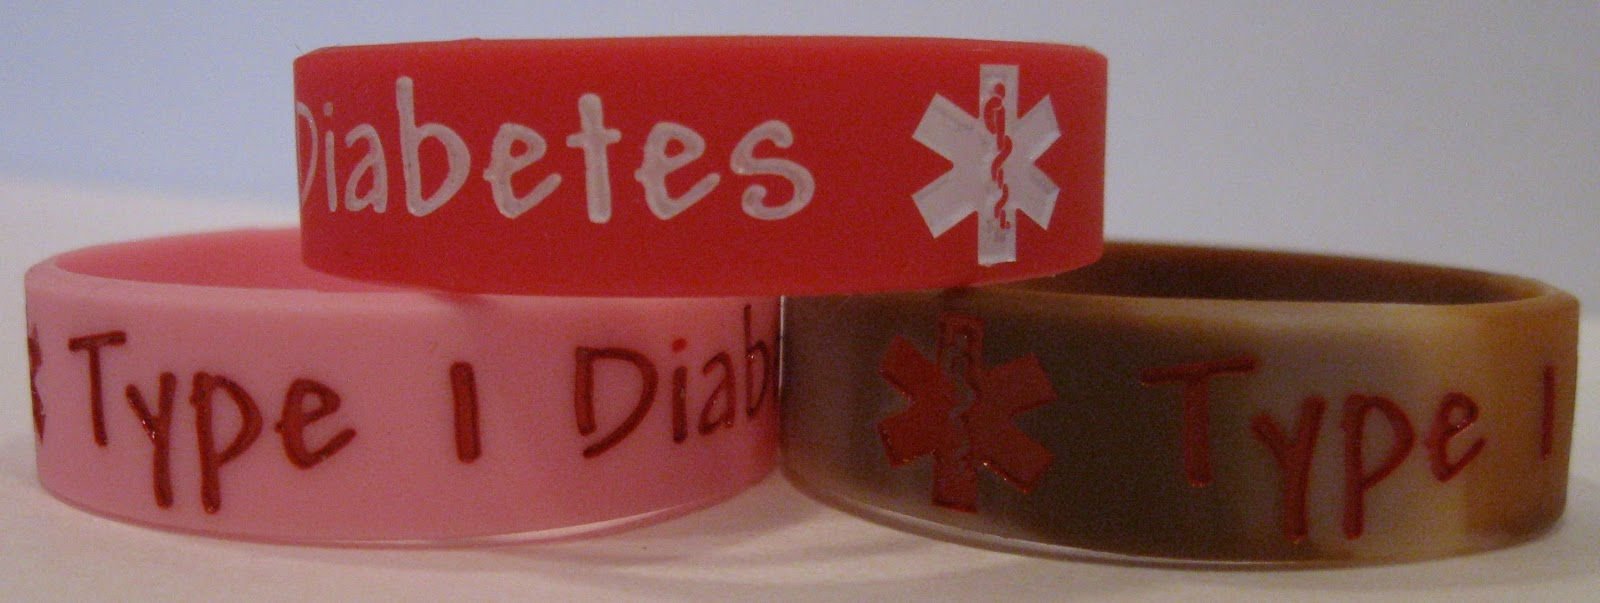 bracelets bracelet diabetic med dependent necklaces type insulin alert wear jewelry diabetes collections